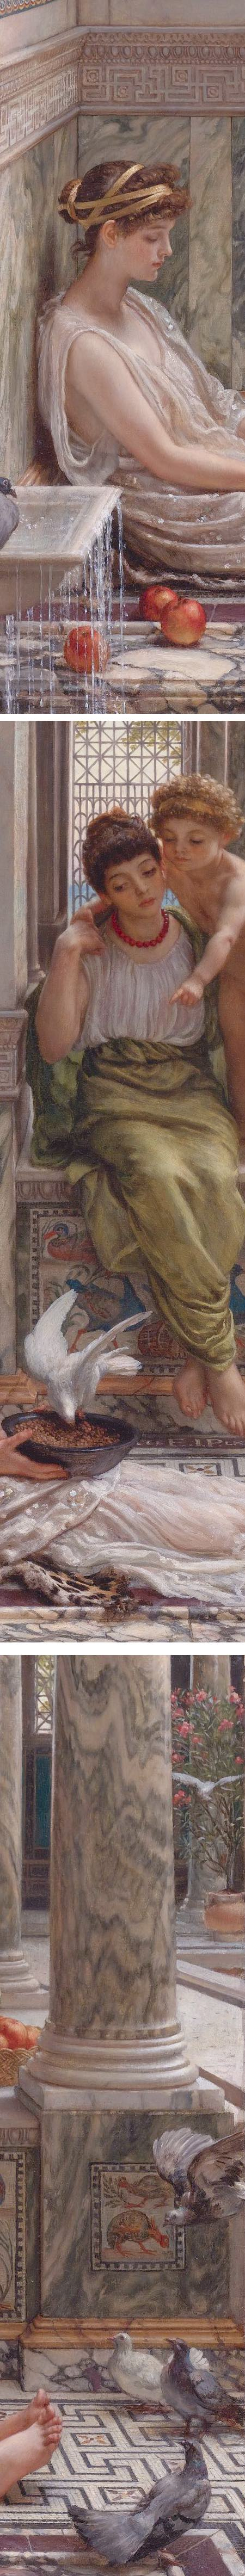 The corner of the villa, by Edward John Poynter (details)